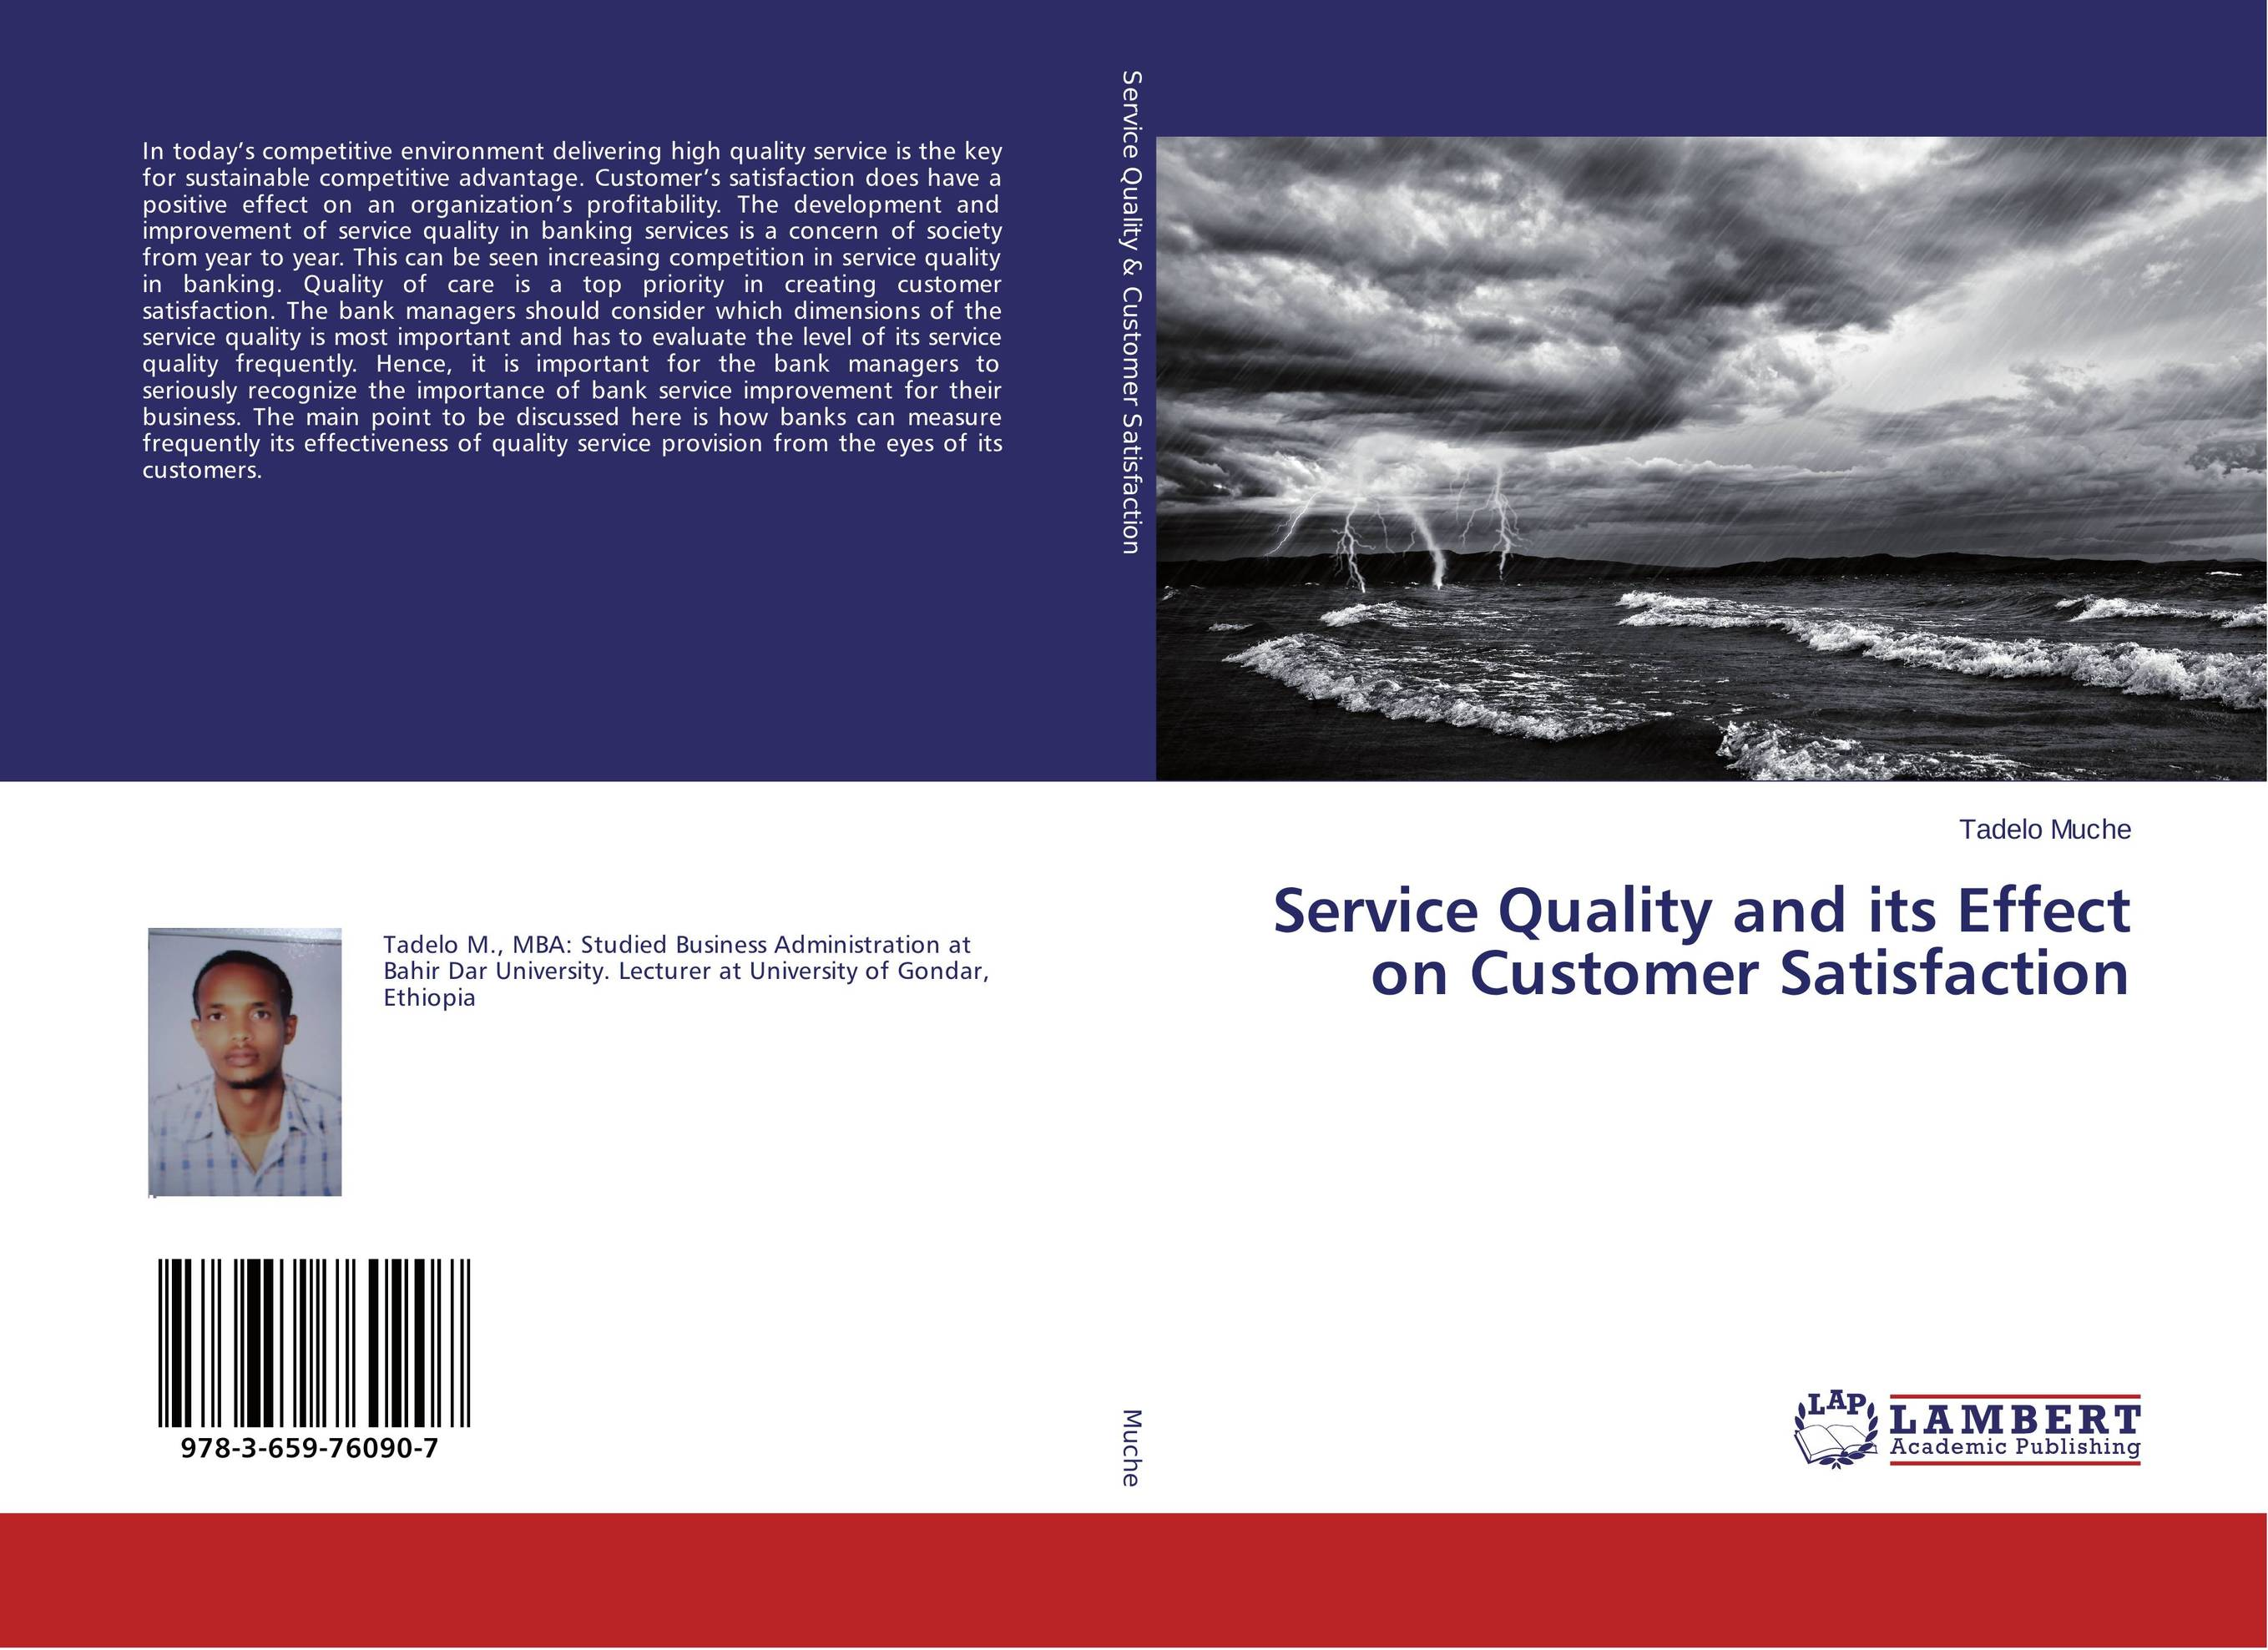 Service Quality and its Effect on Customer Satisfaction robert spector the nordstrom way to customer experience excellence creating a values driven service culture